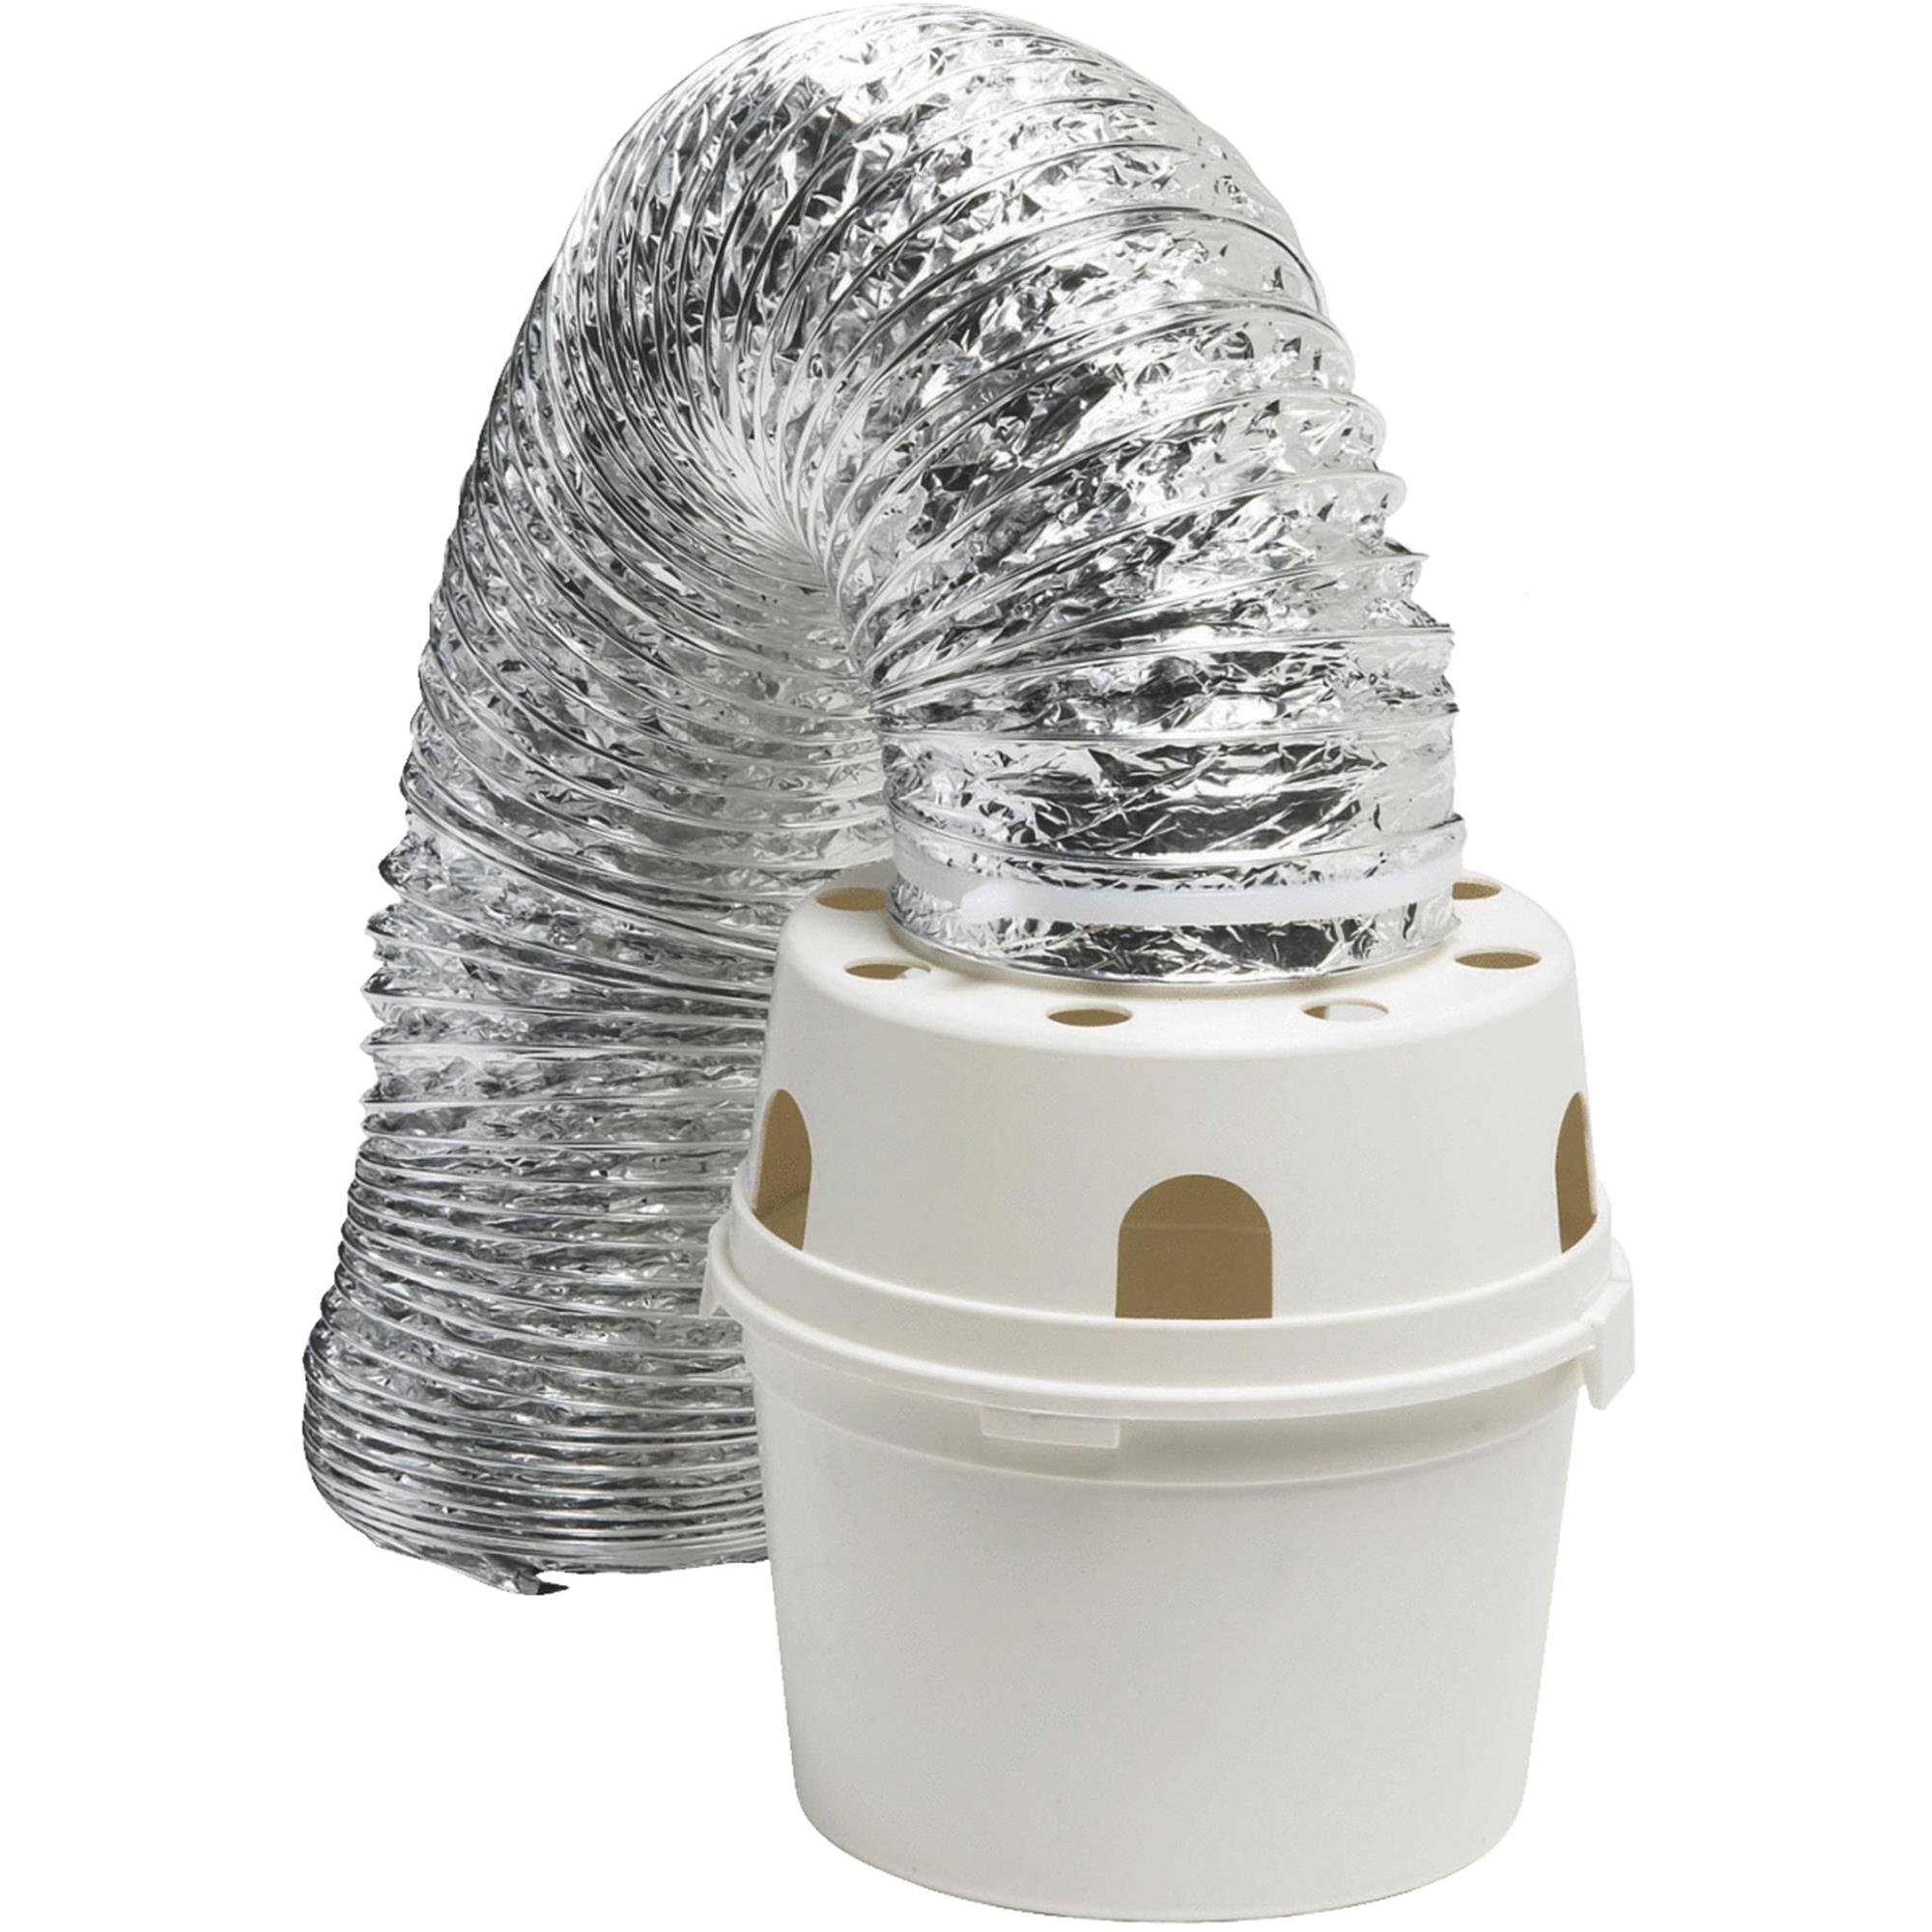 Dundas Jafine ProFlex Indoor Dryer Vent Kit